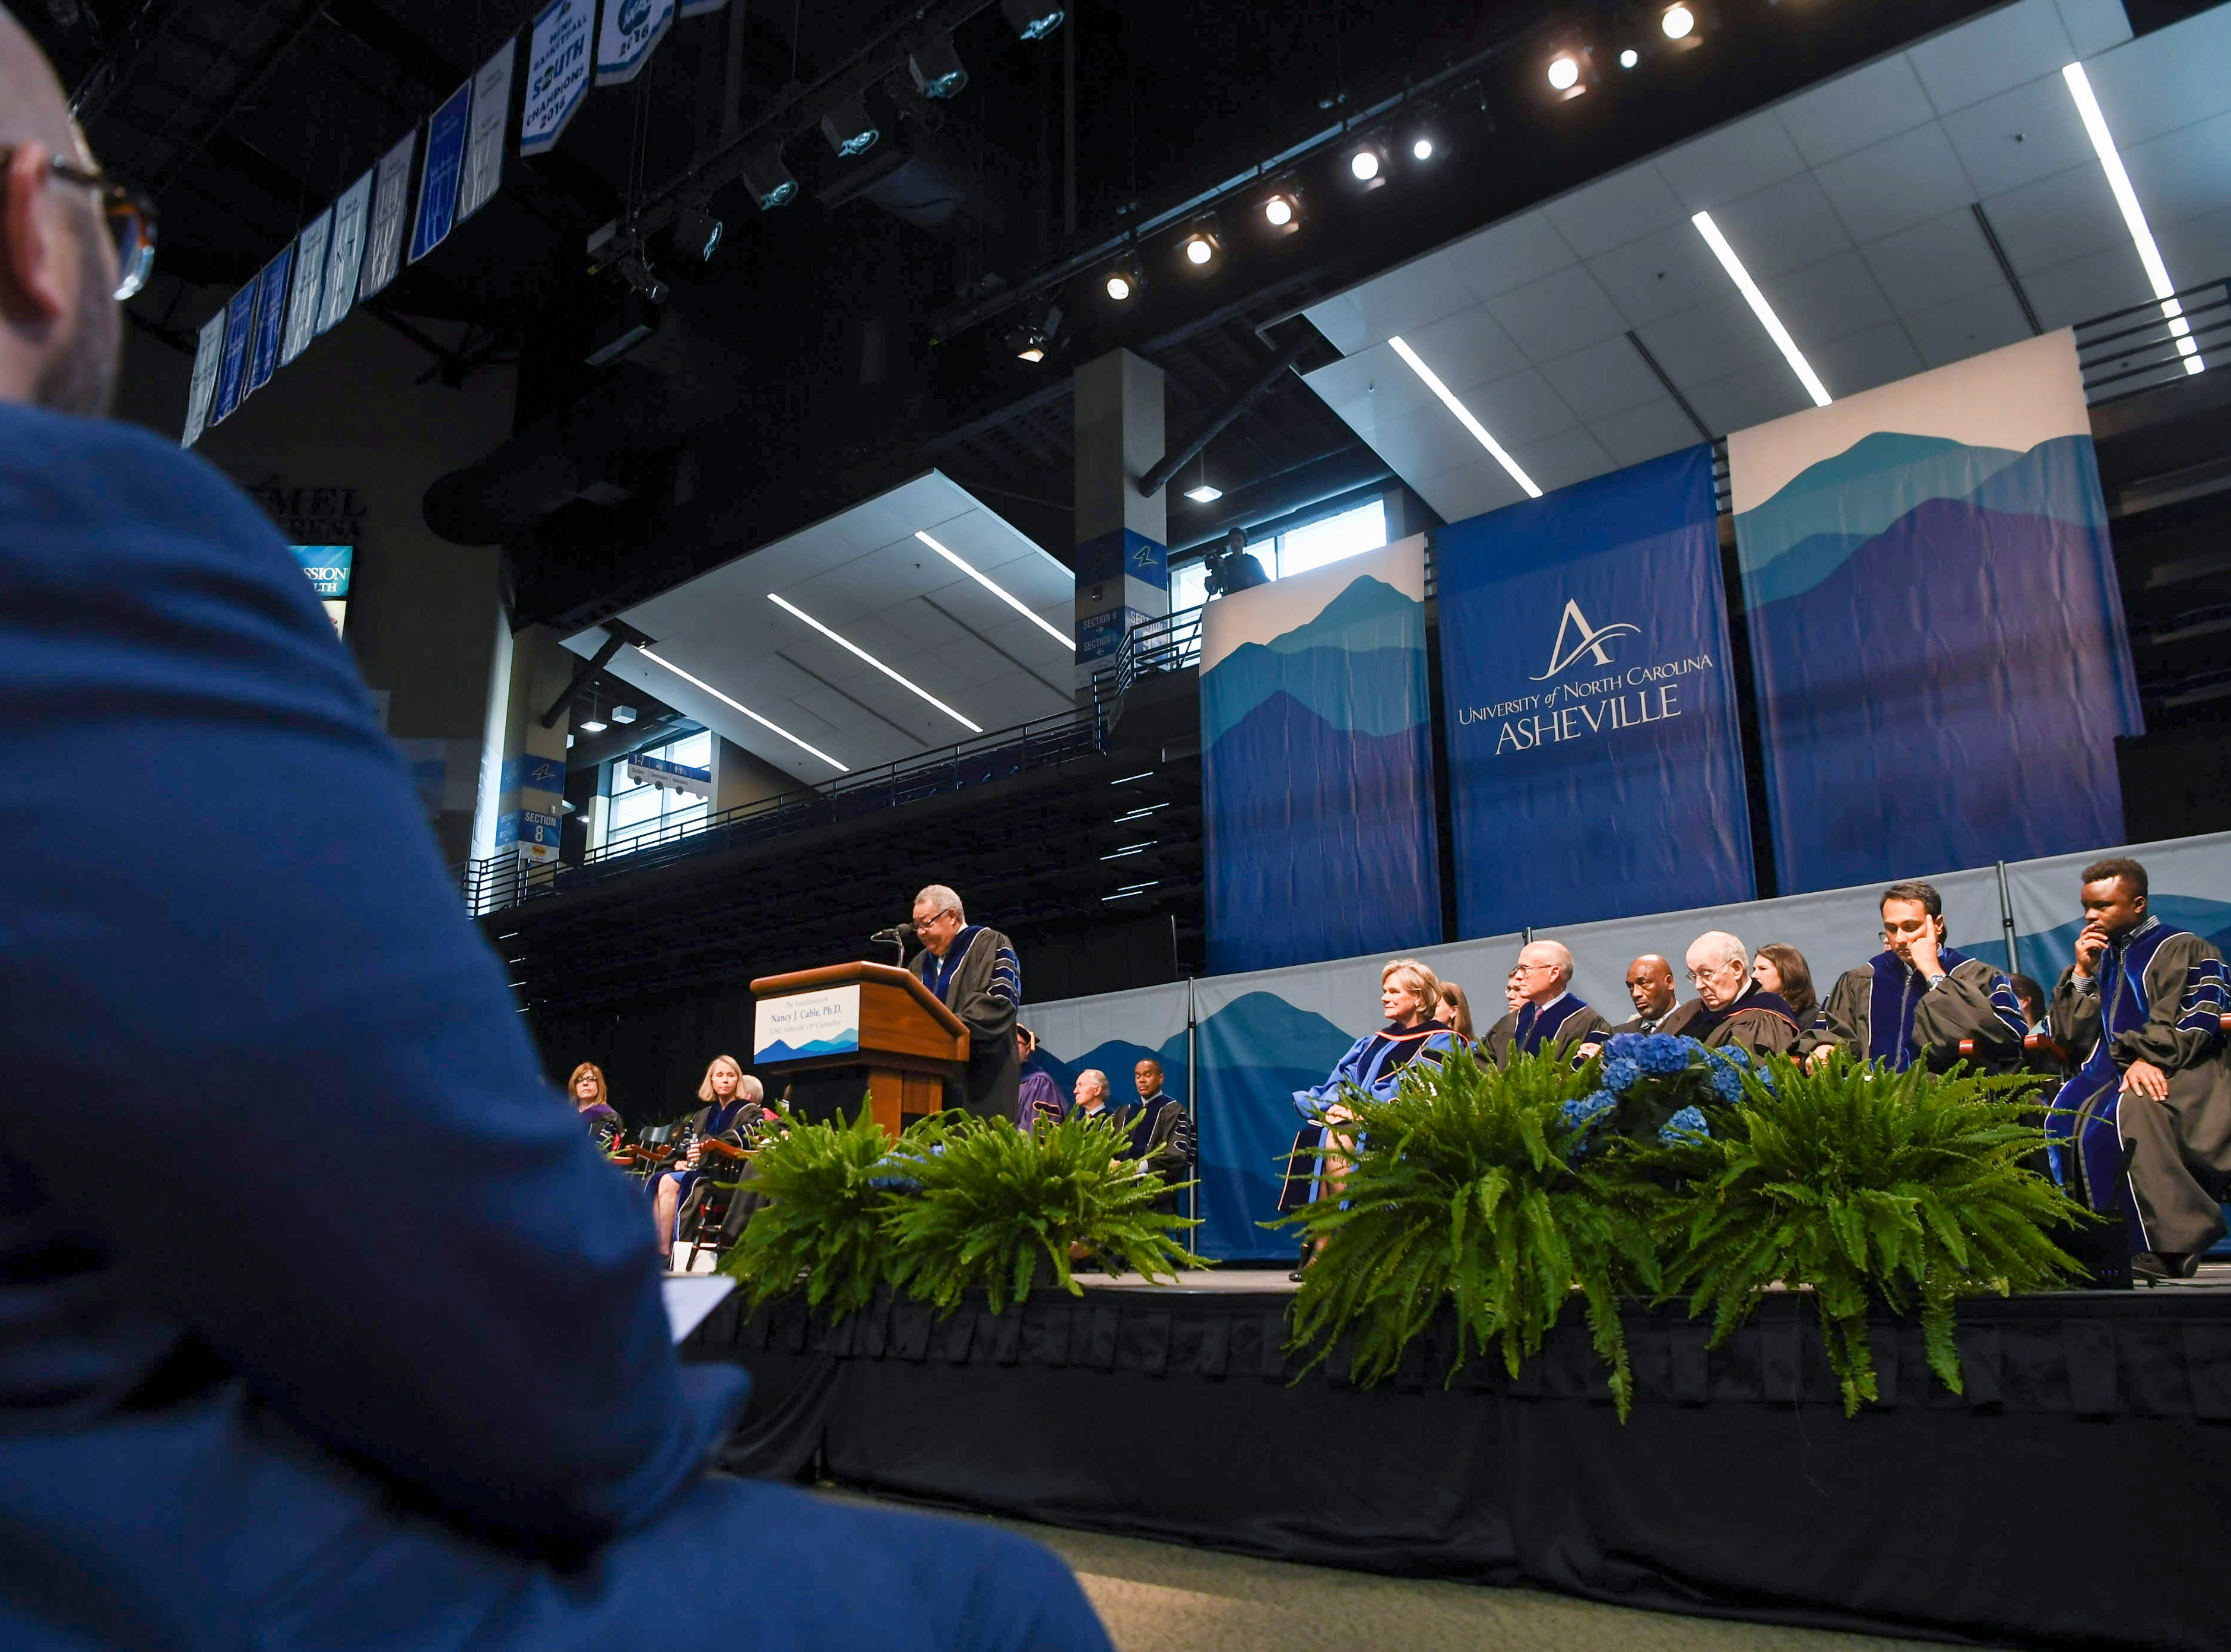 Nancy J. Cable was installed as the University of North Carolina Asheville's eighth chancellor April 26, 2019.